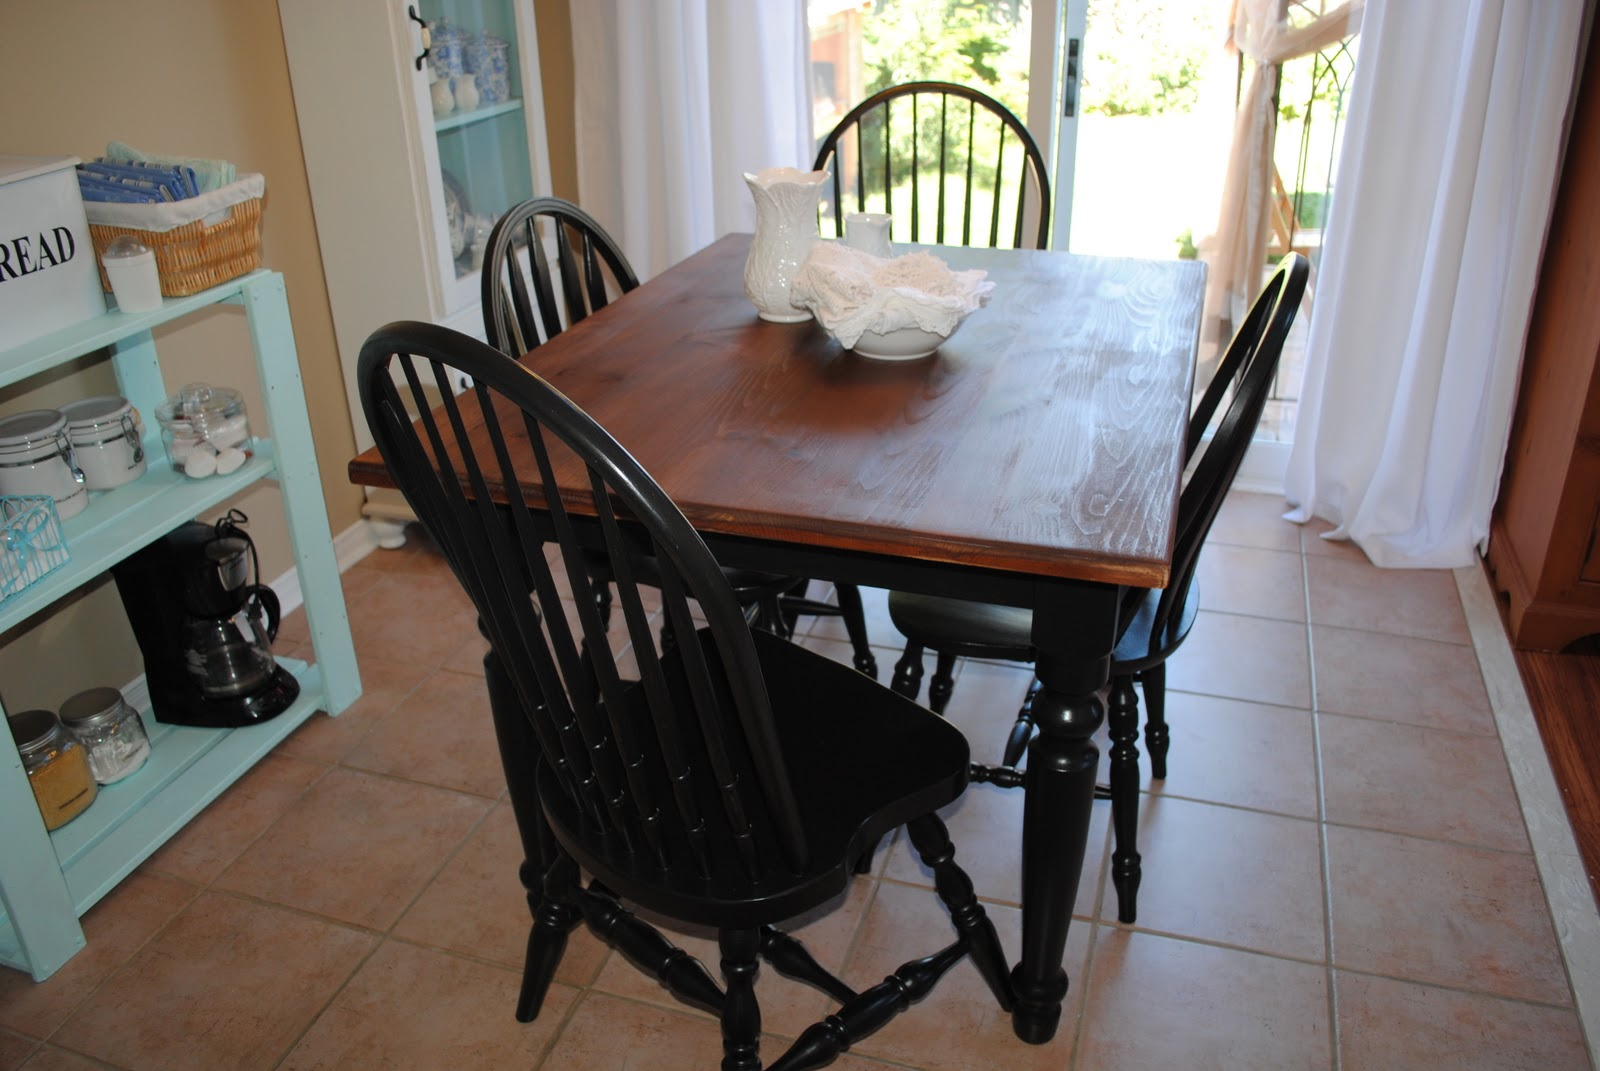 Painted farmhouse table and chairs - I Also Like Mixing Black With Plain Or Scrubbed Pine Like In Our Dining Room While This Is Too Country For Some It Really Appeals To Me